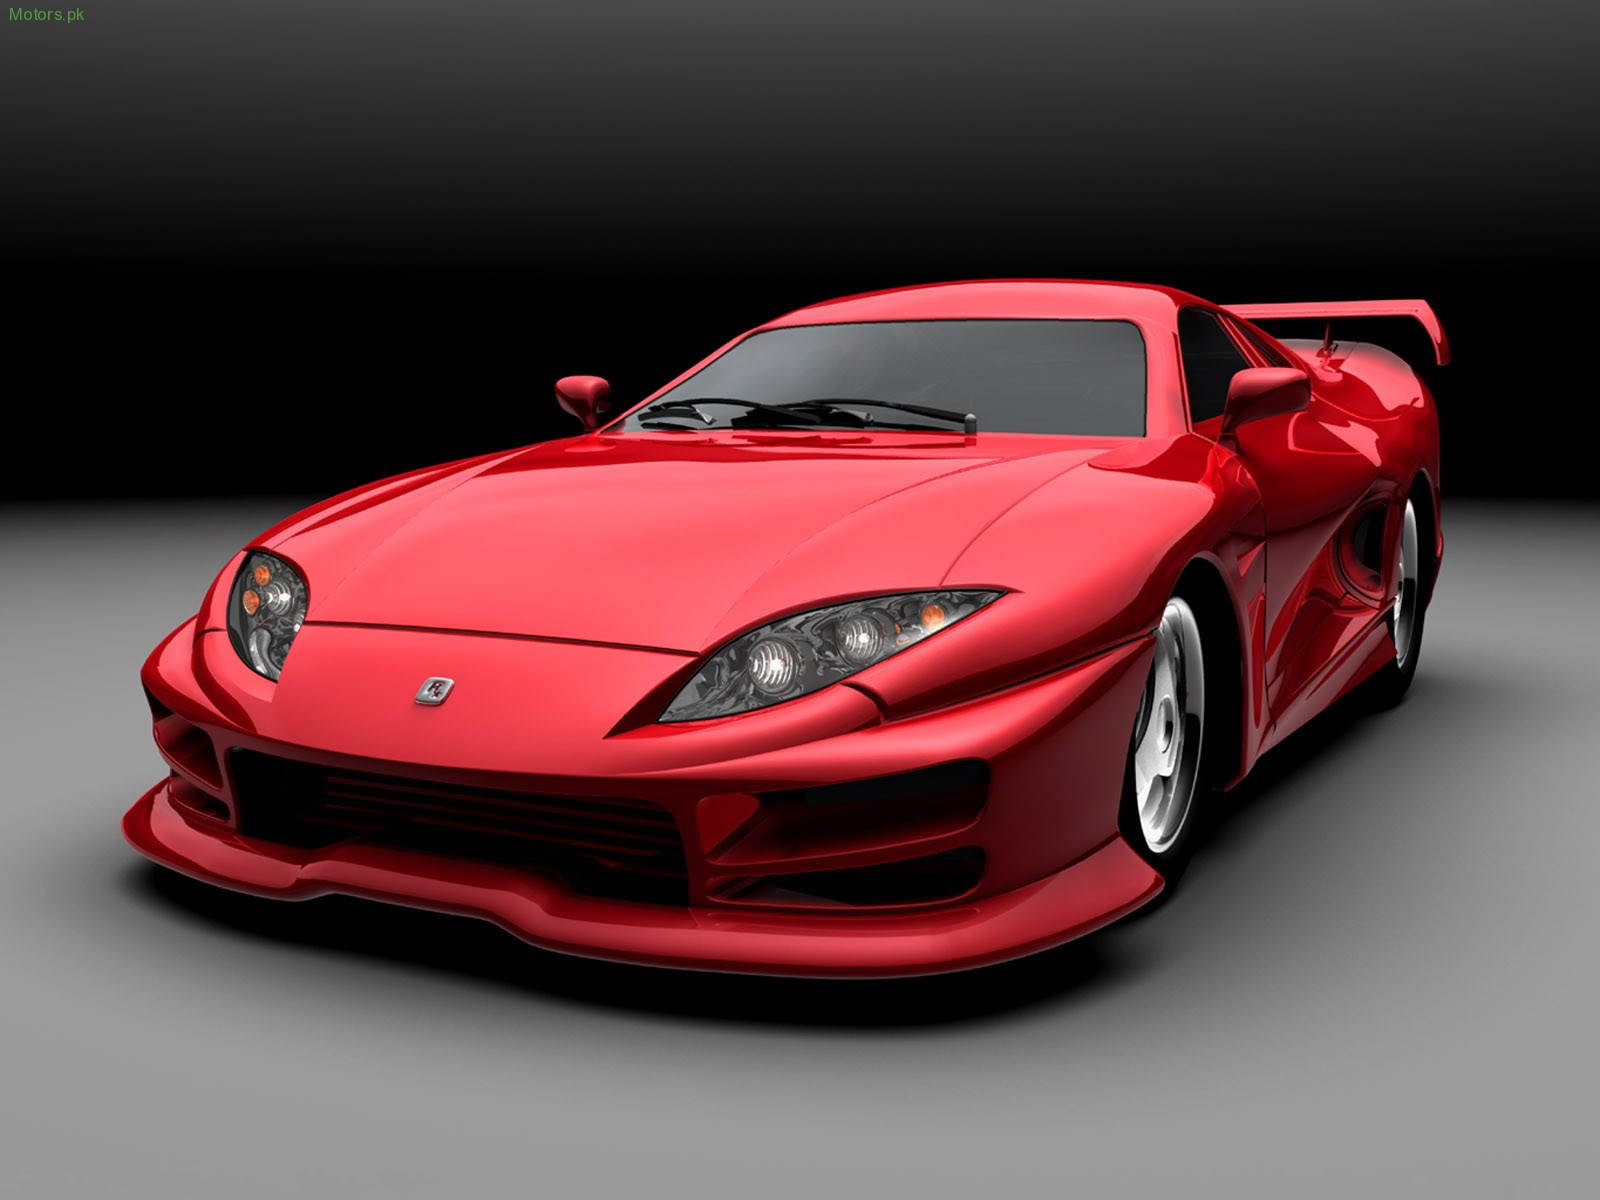 Elegant Red Sports Car